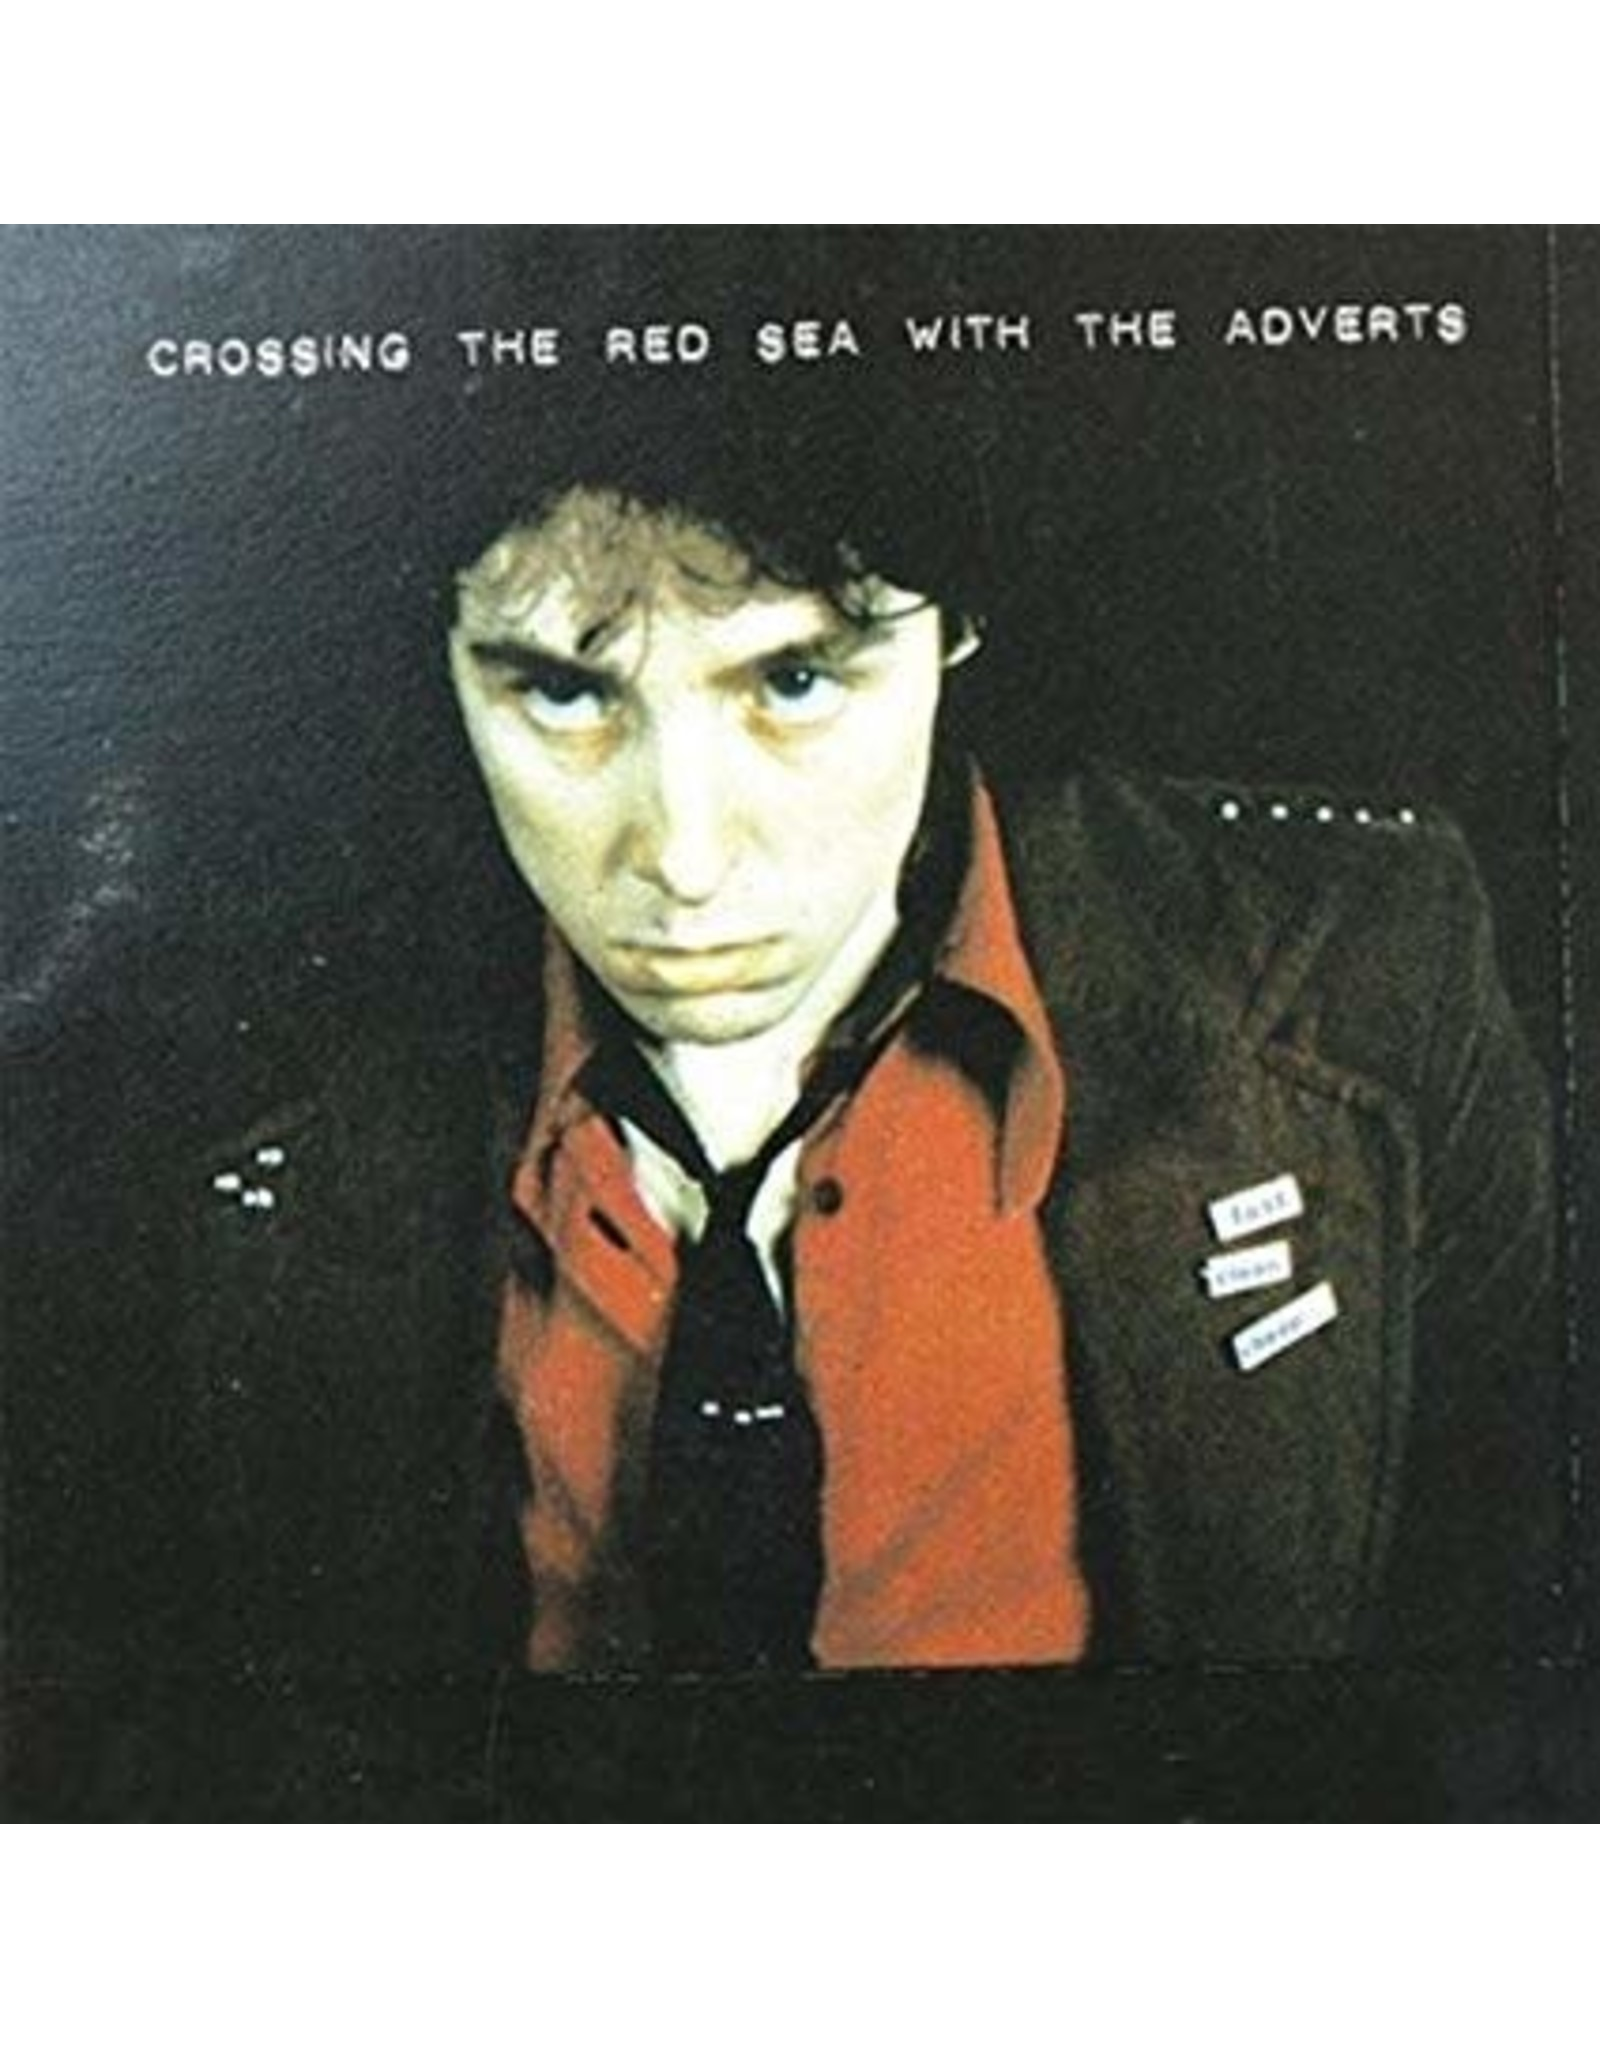 Adverts - Crossing The Red Sea With The Adverts (Deluxe)